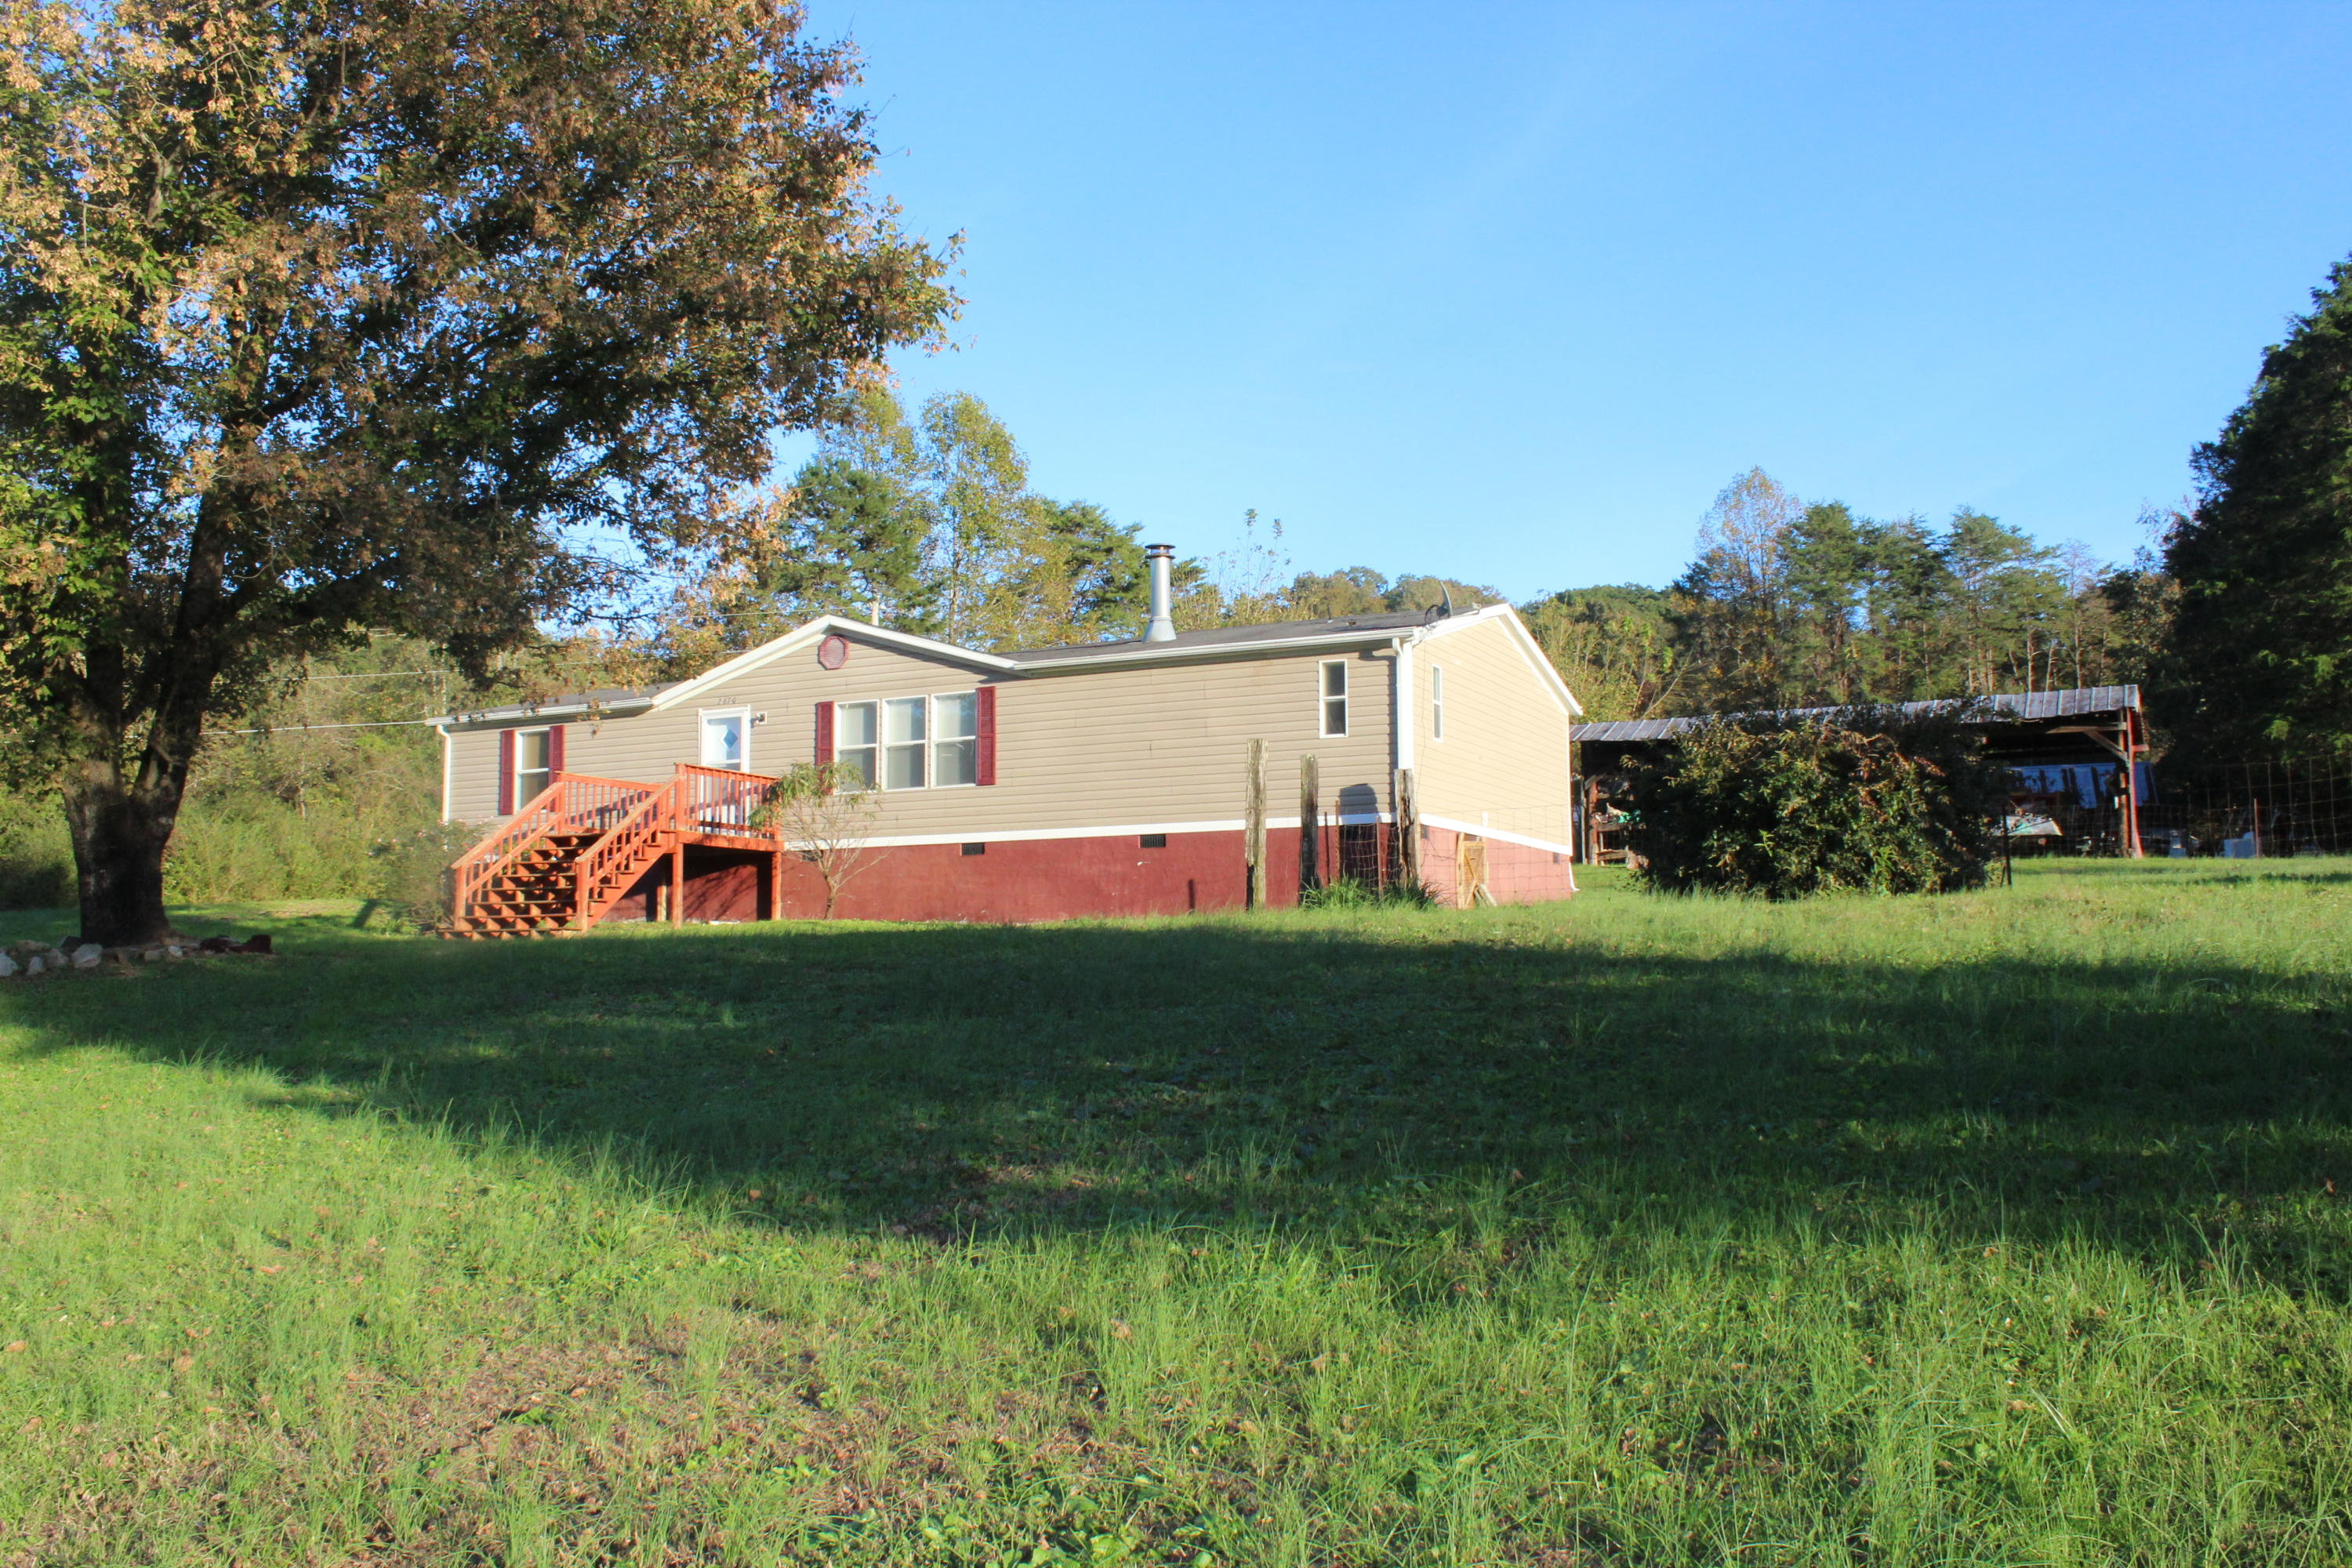 20190702152748861700000000-o Clinton anderson county homes for sale